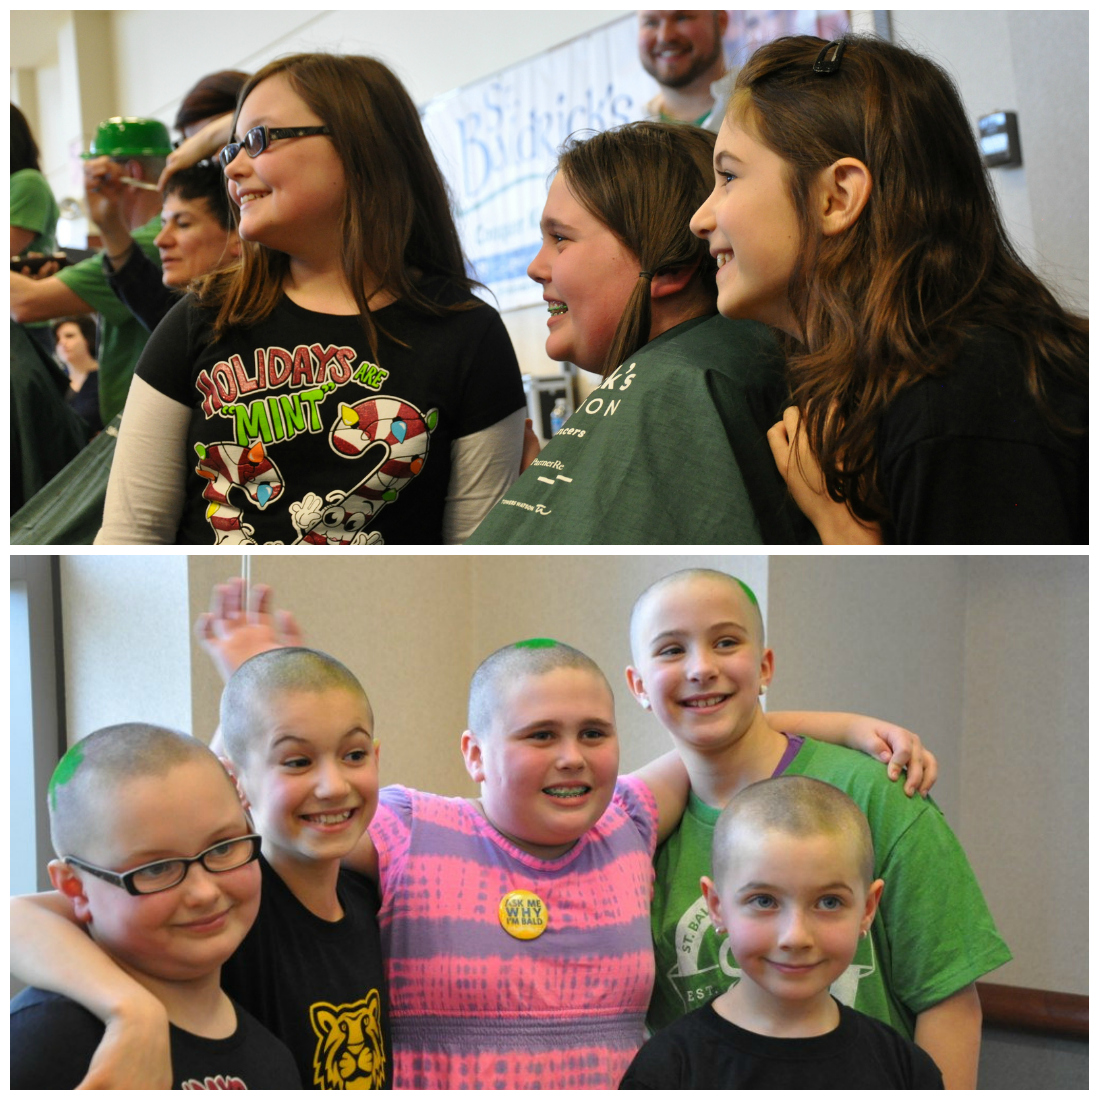 Five young girls shaved their heads together